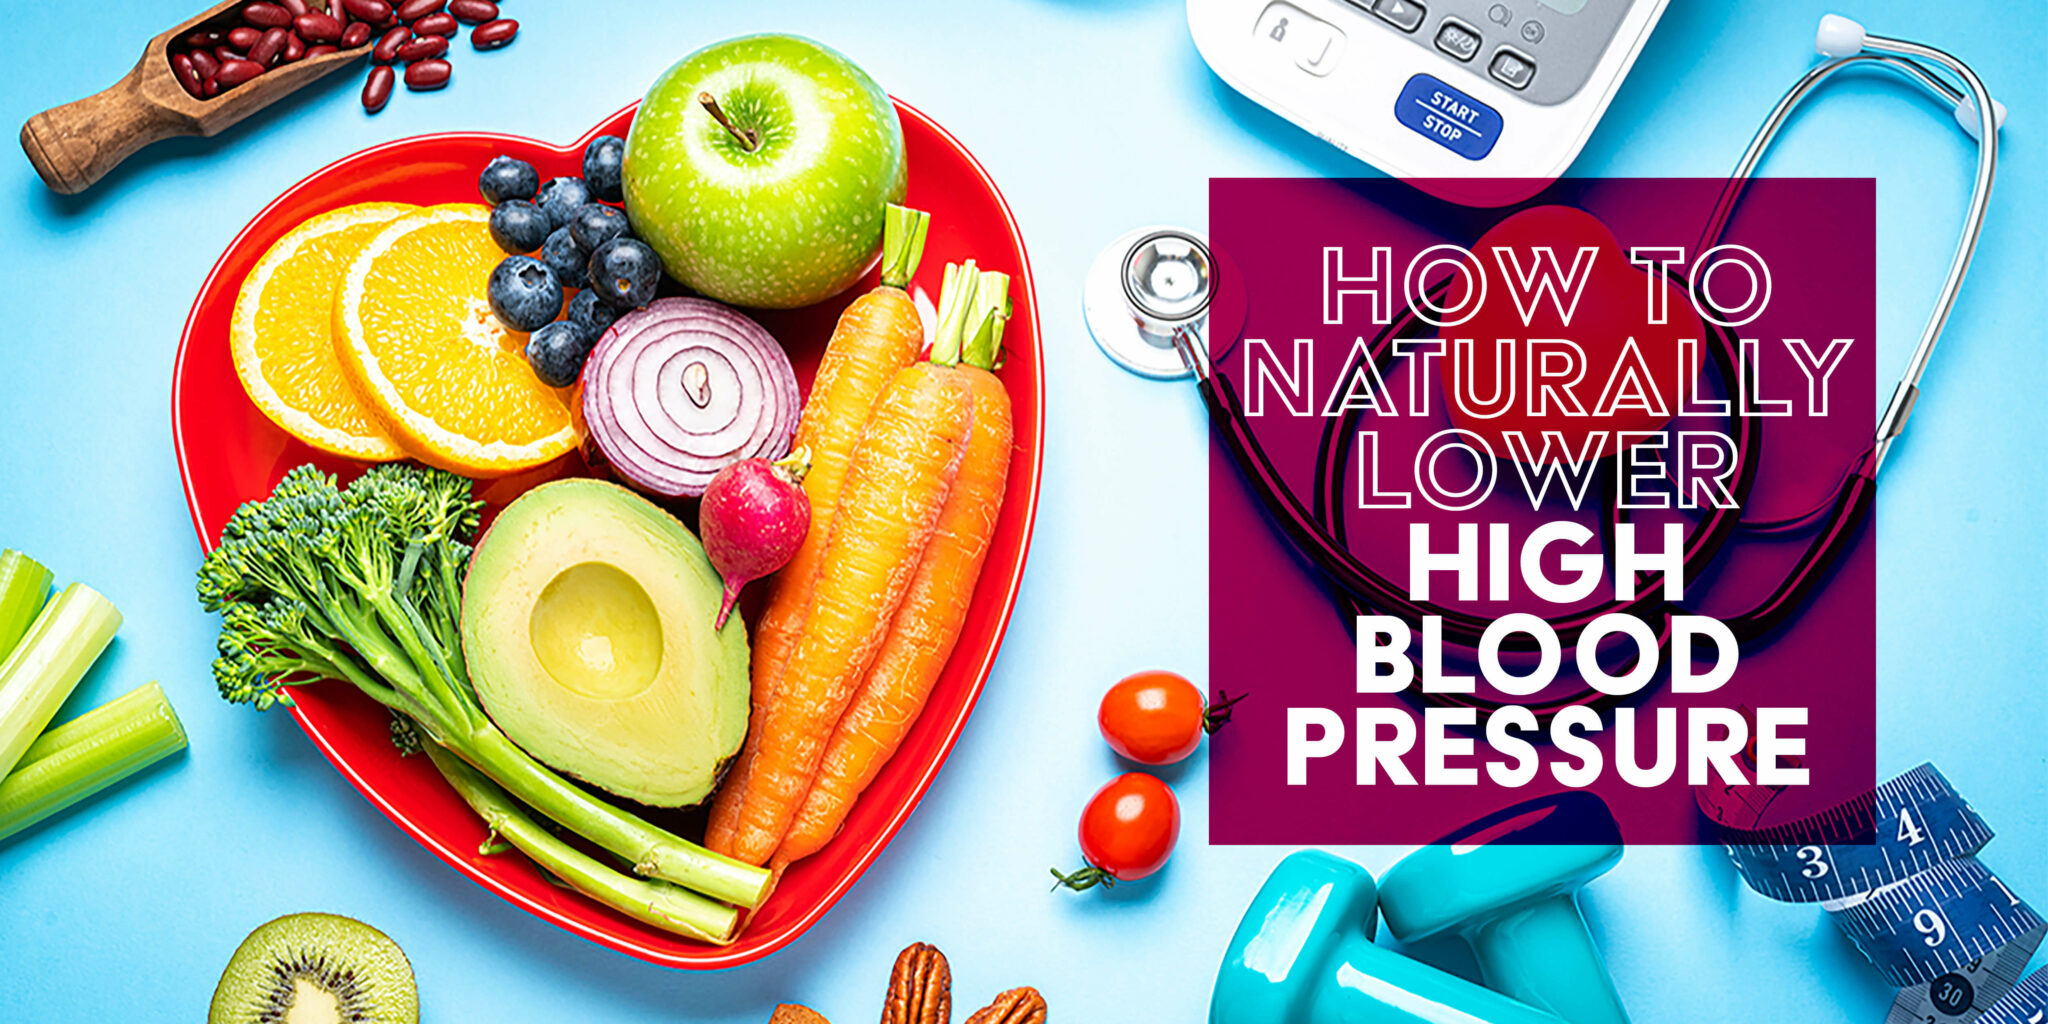 How to Naturally Lower High Blood Pressure